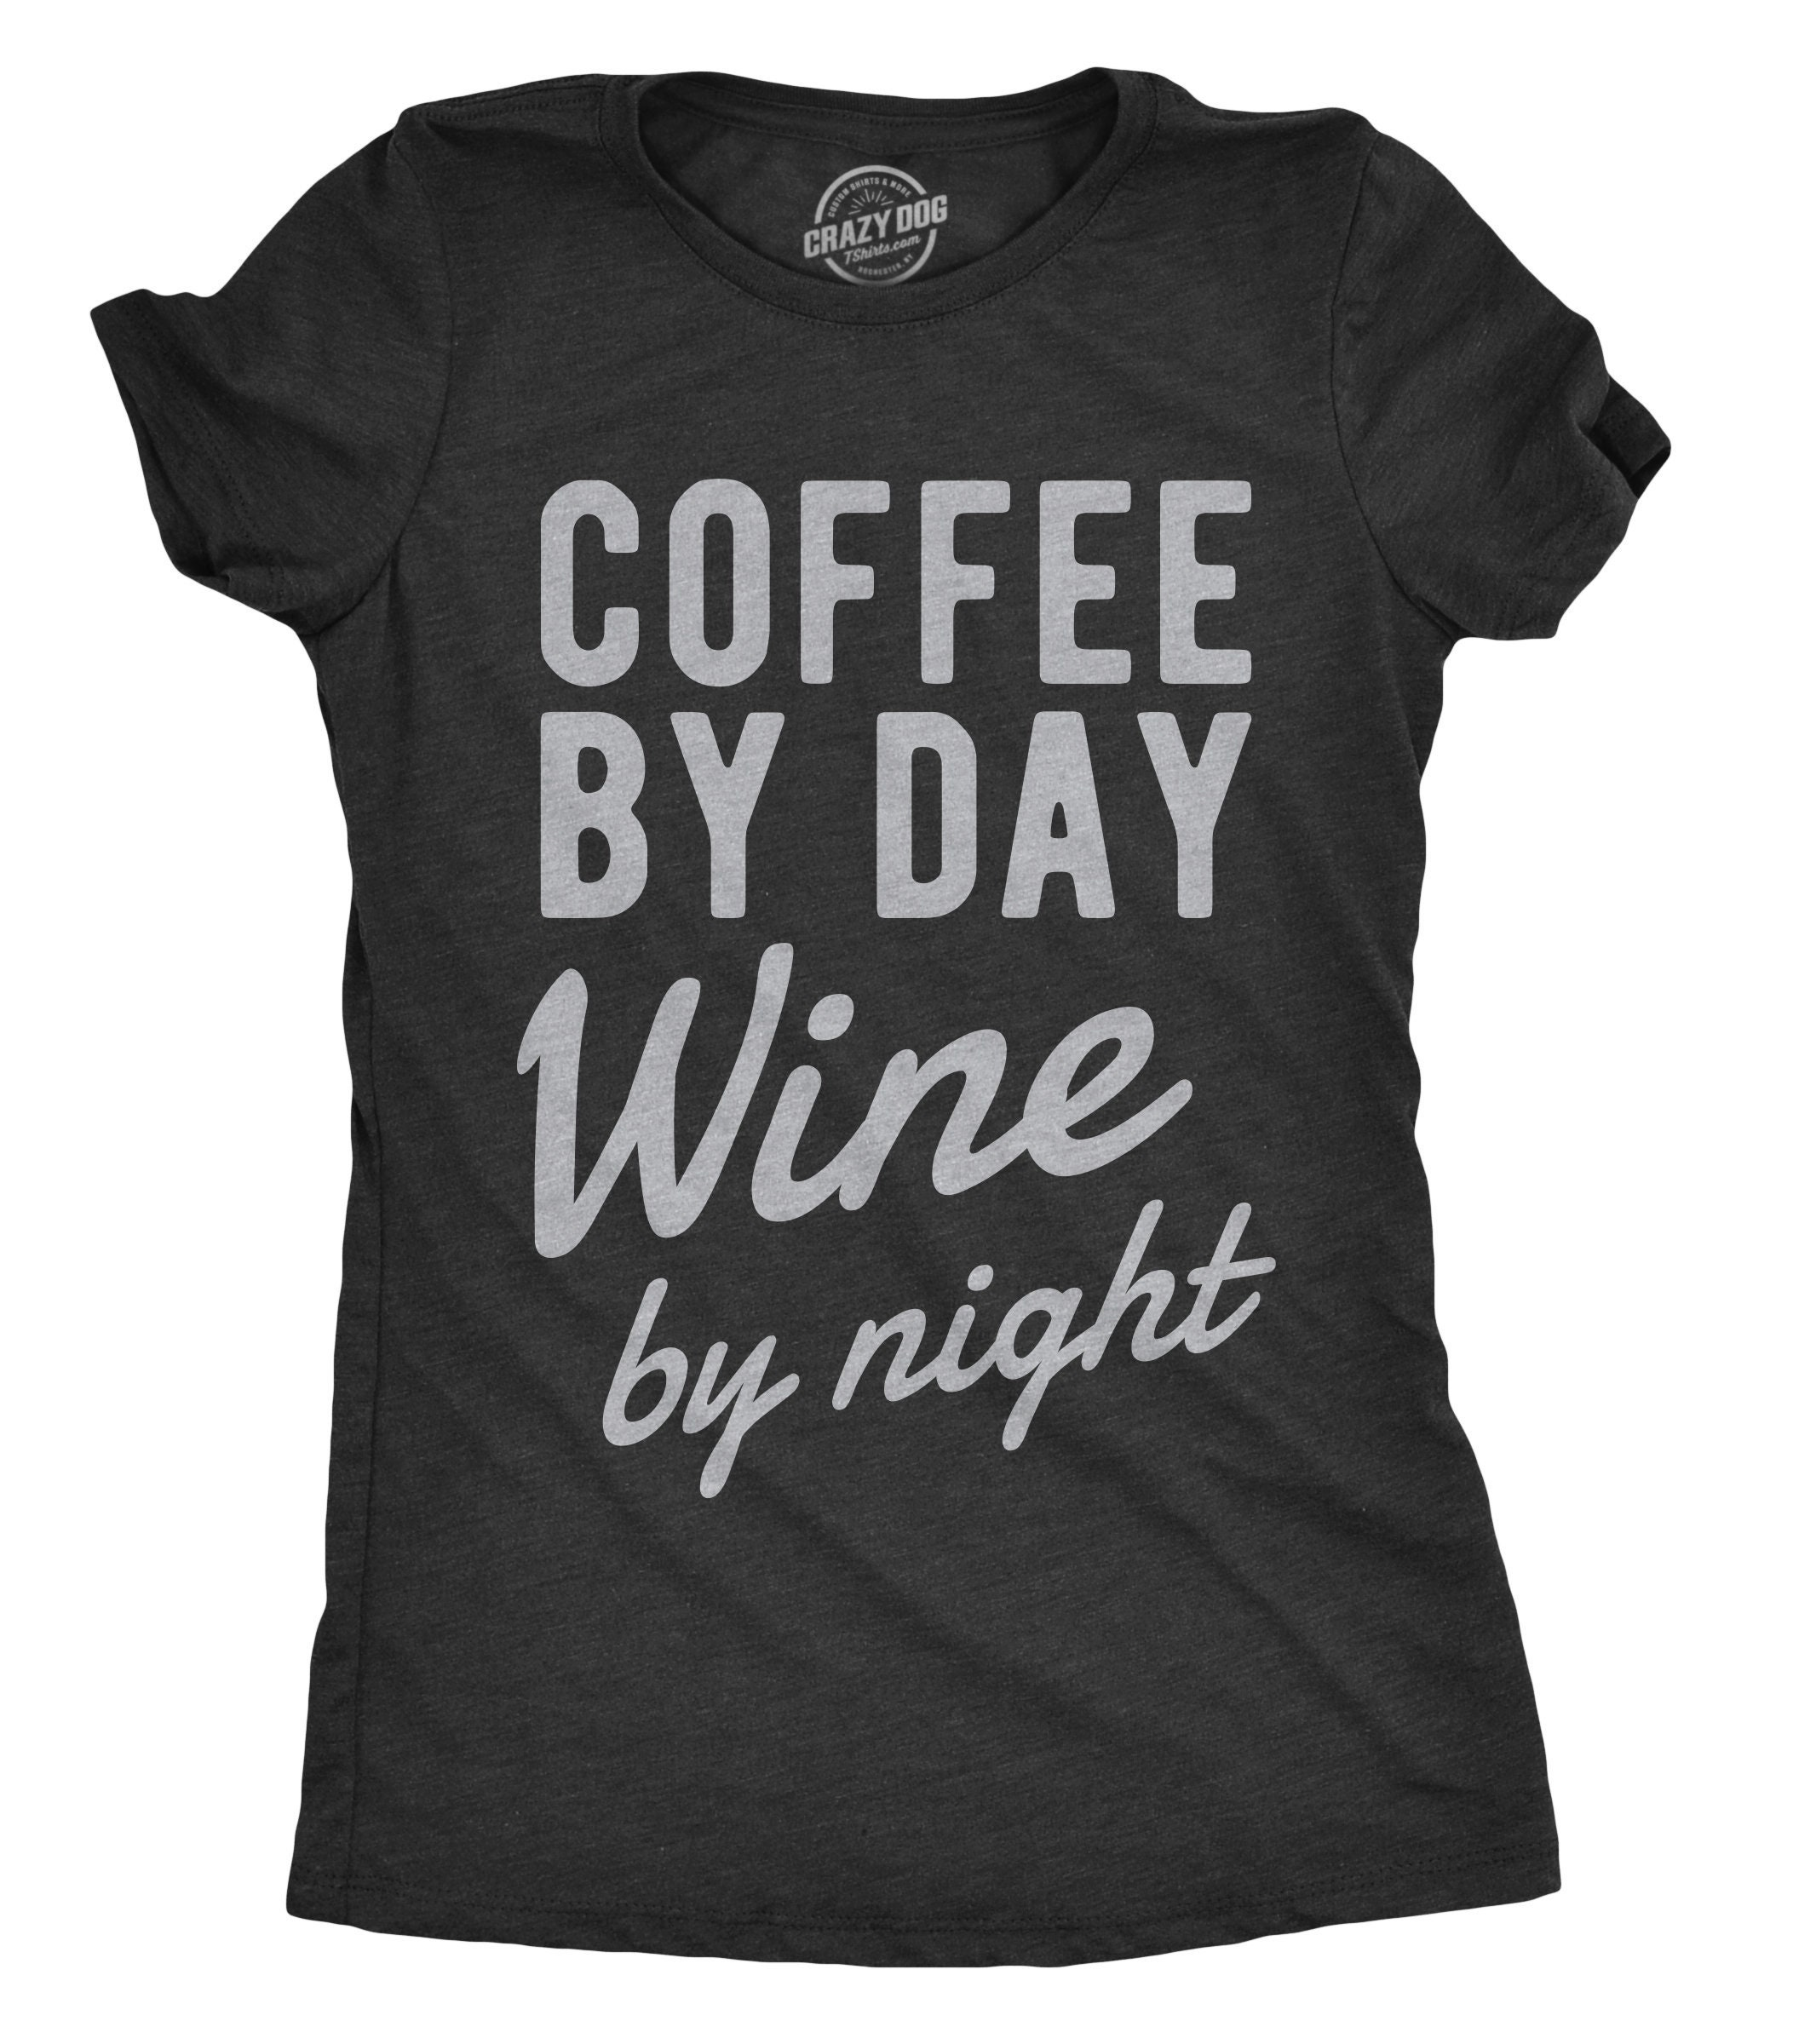 c9d558d01 Funny Wine Shirt Womens Wine T shirt Gift for Coffee Lovers | Etsy